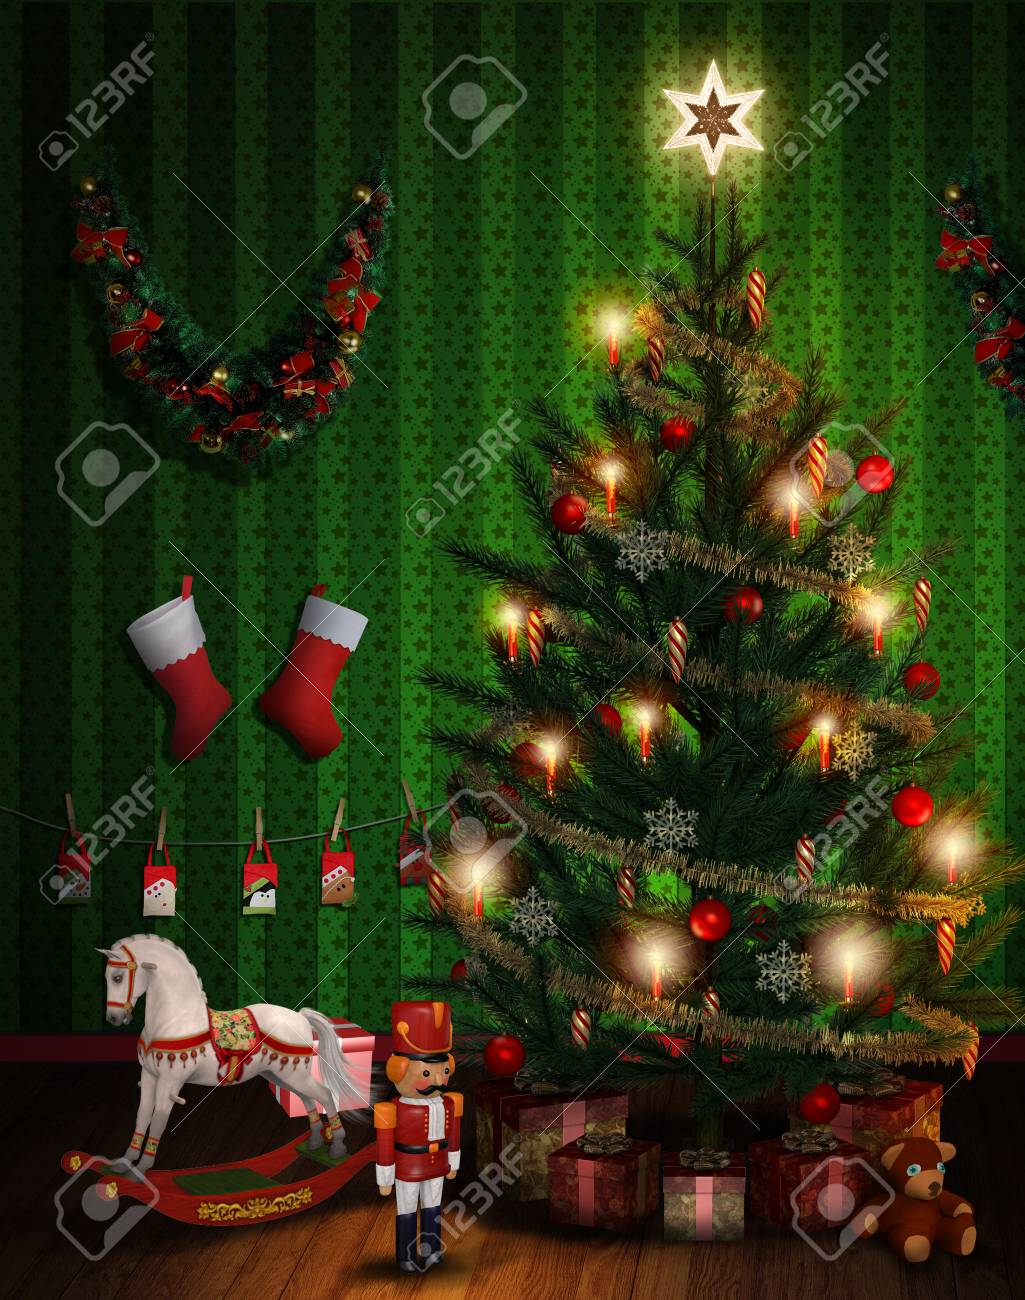 3d Render Of A Room With A Christmas Tree With Presents And